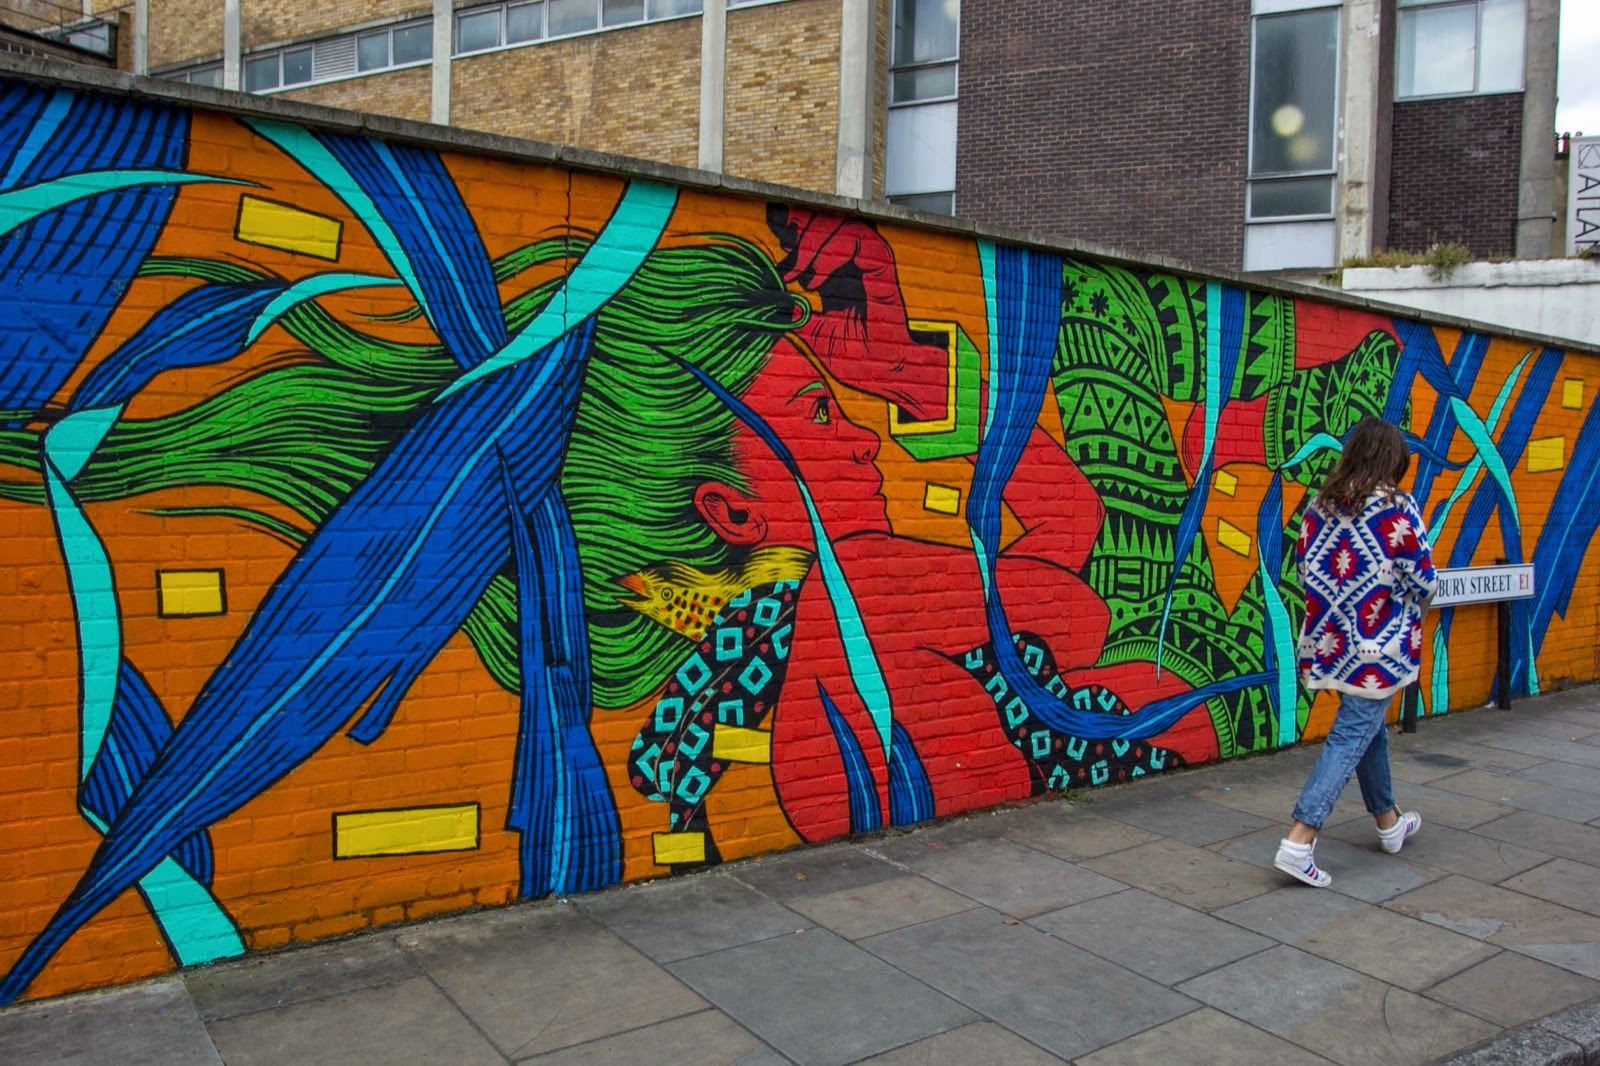 The JustKids collective landed in London, UK where they took over Brick Lane with some of their artists.